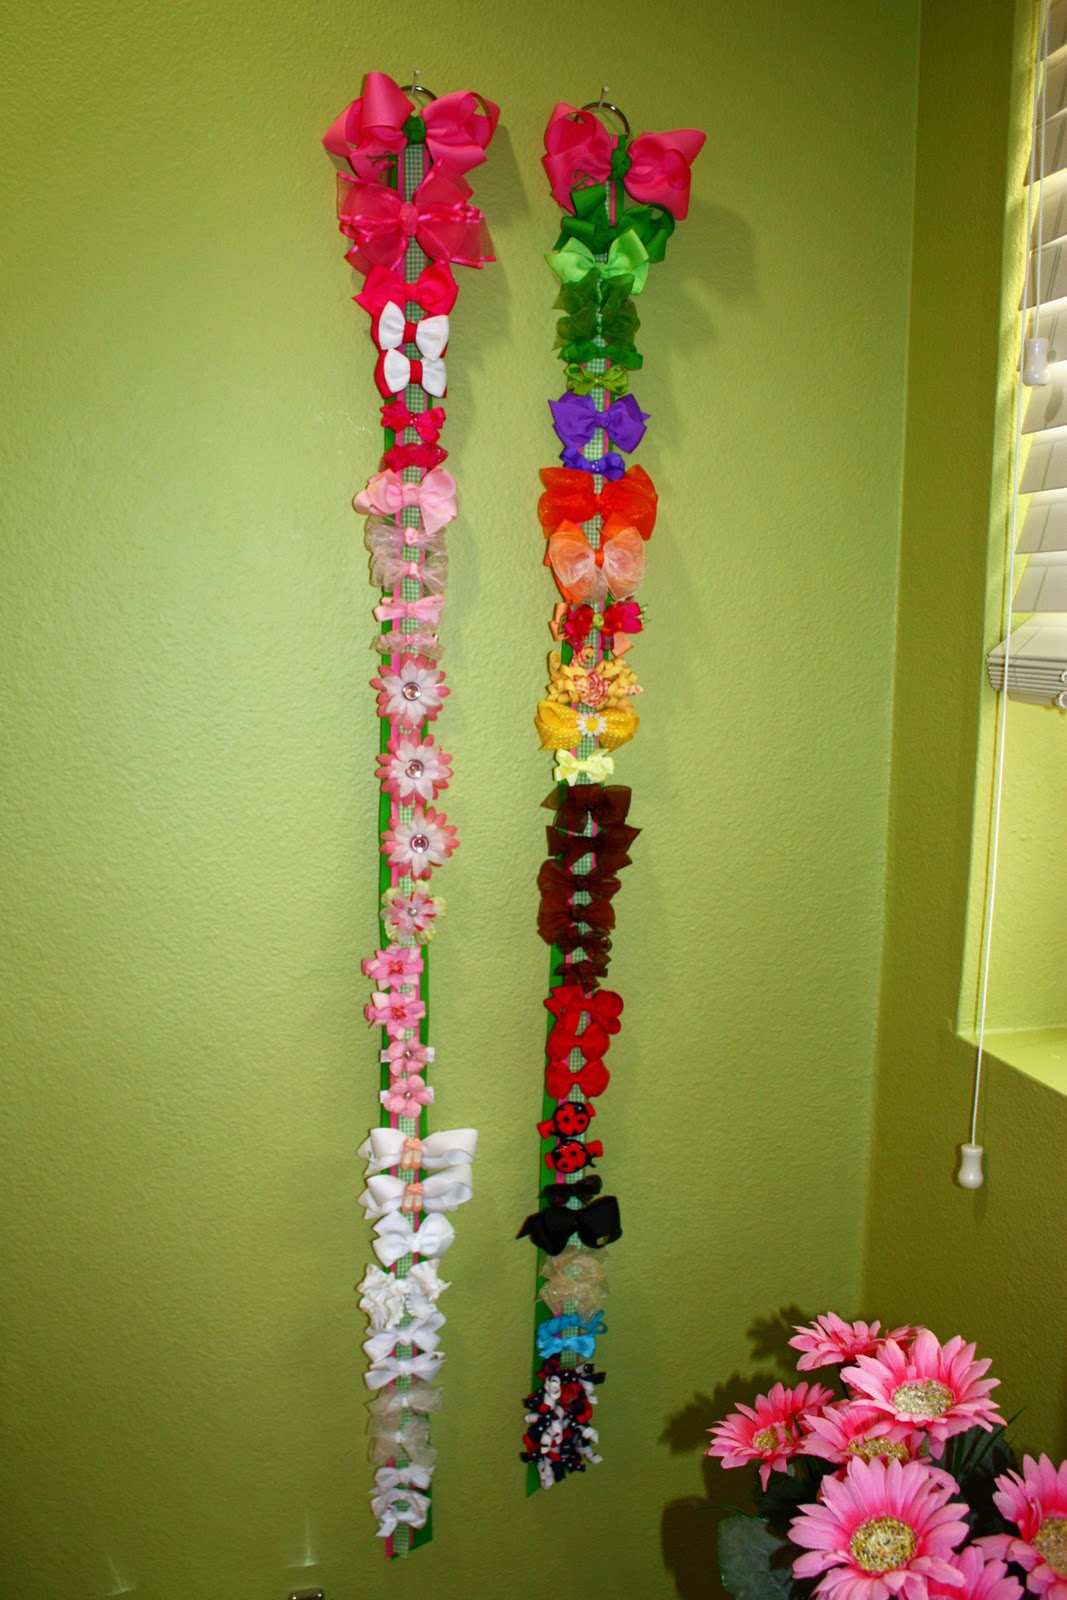 How to organize hair bows - Hair Accessories And A Winner